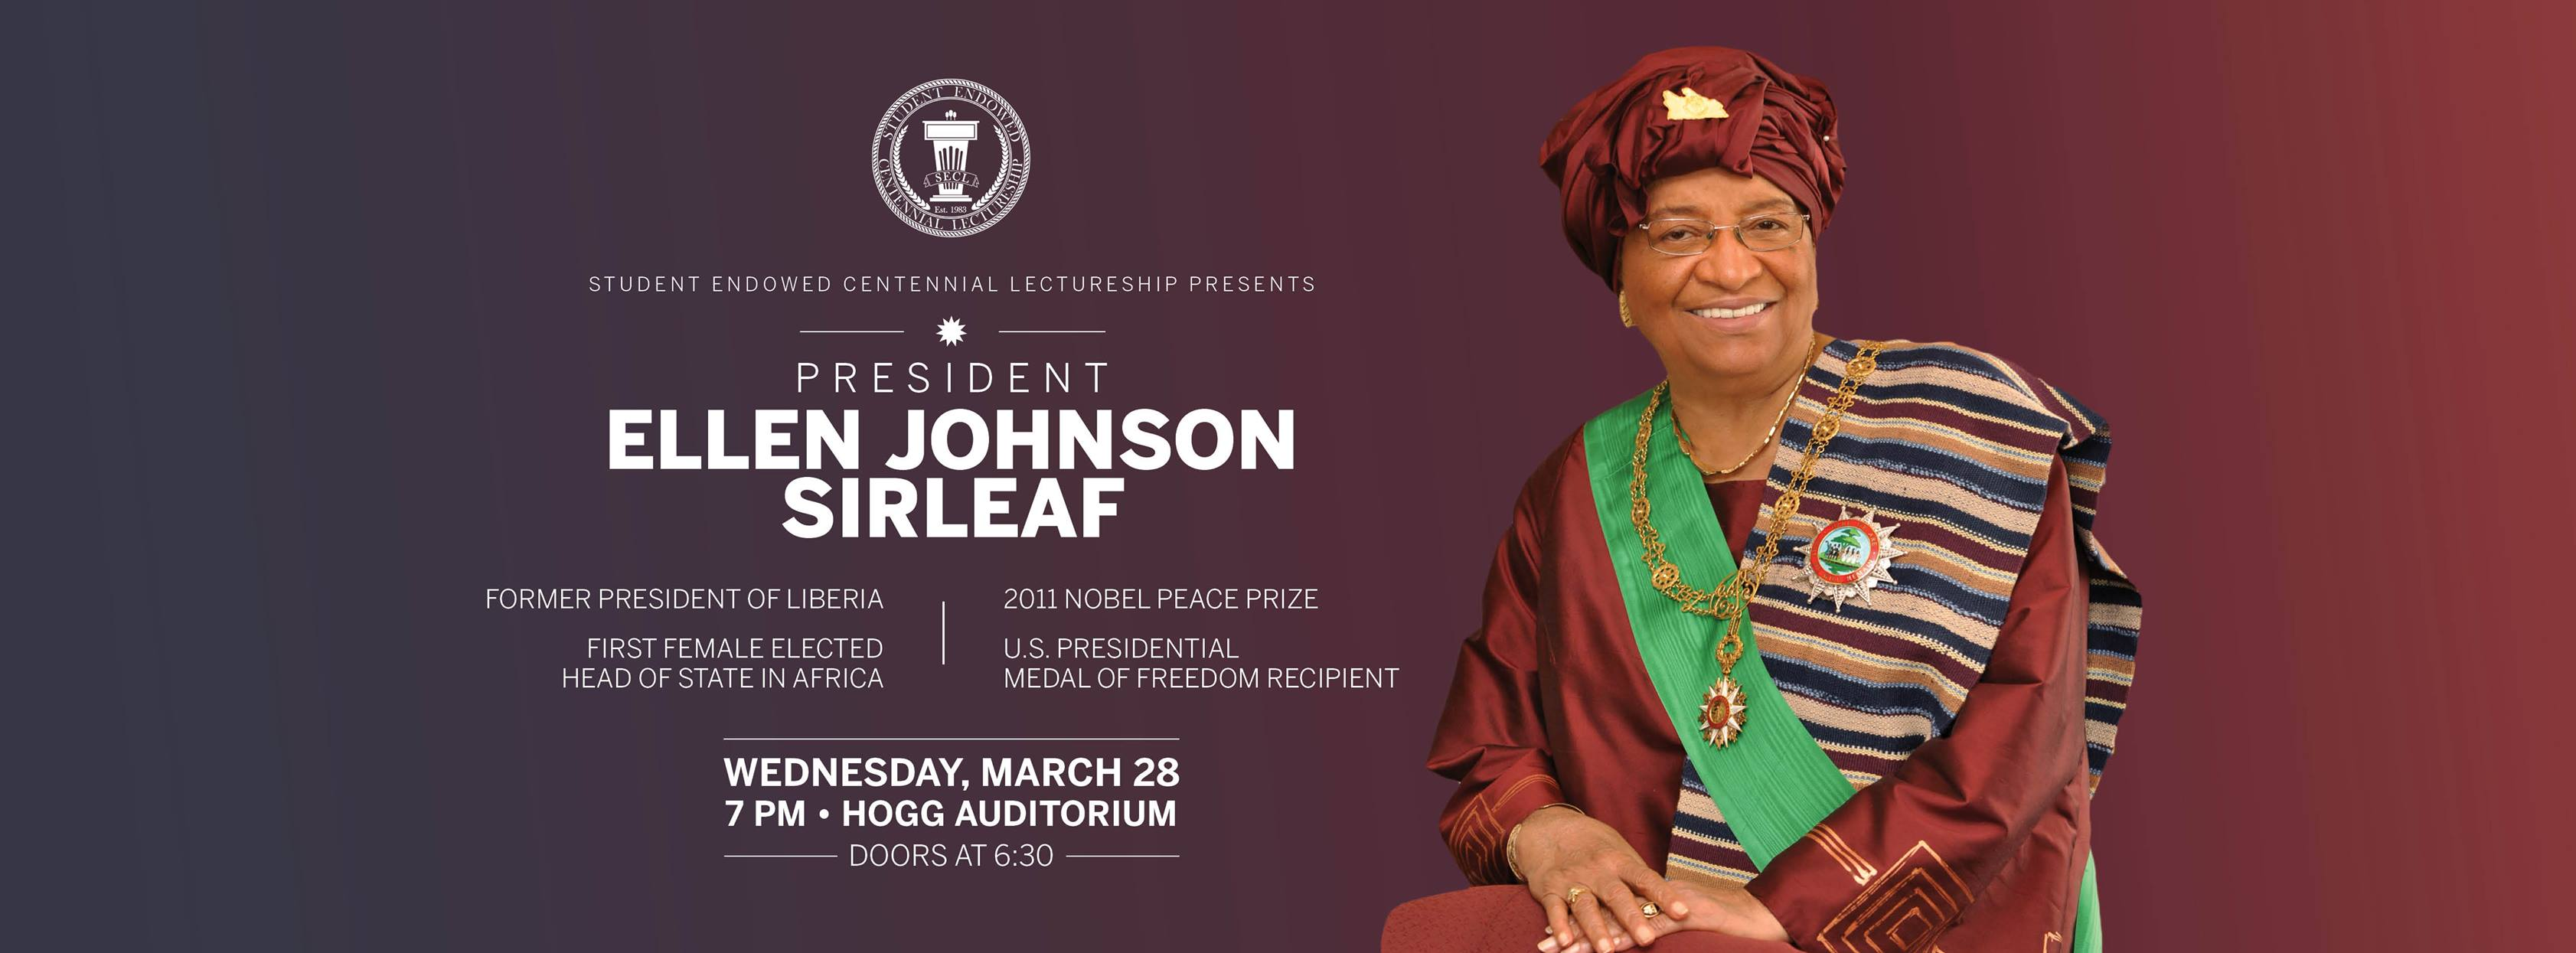 Image of President Sirleaf with event information